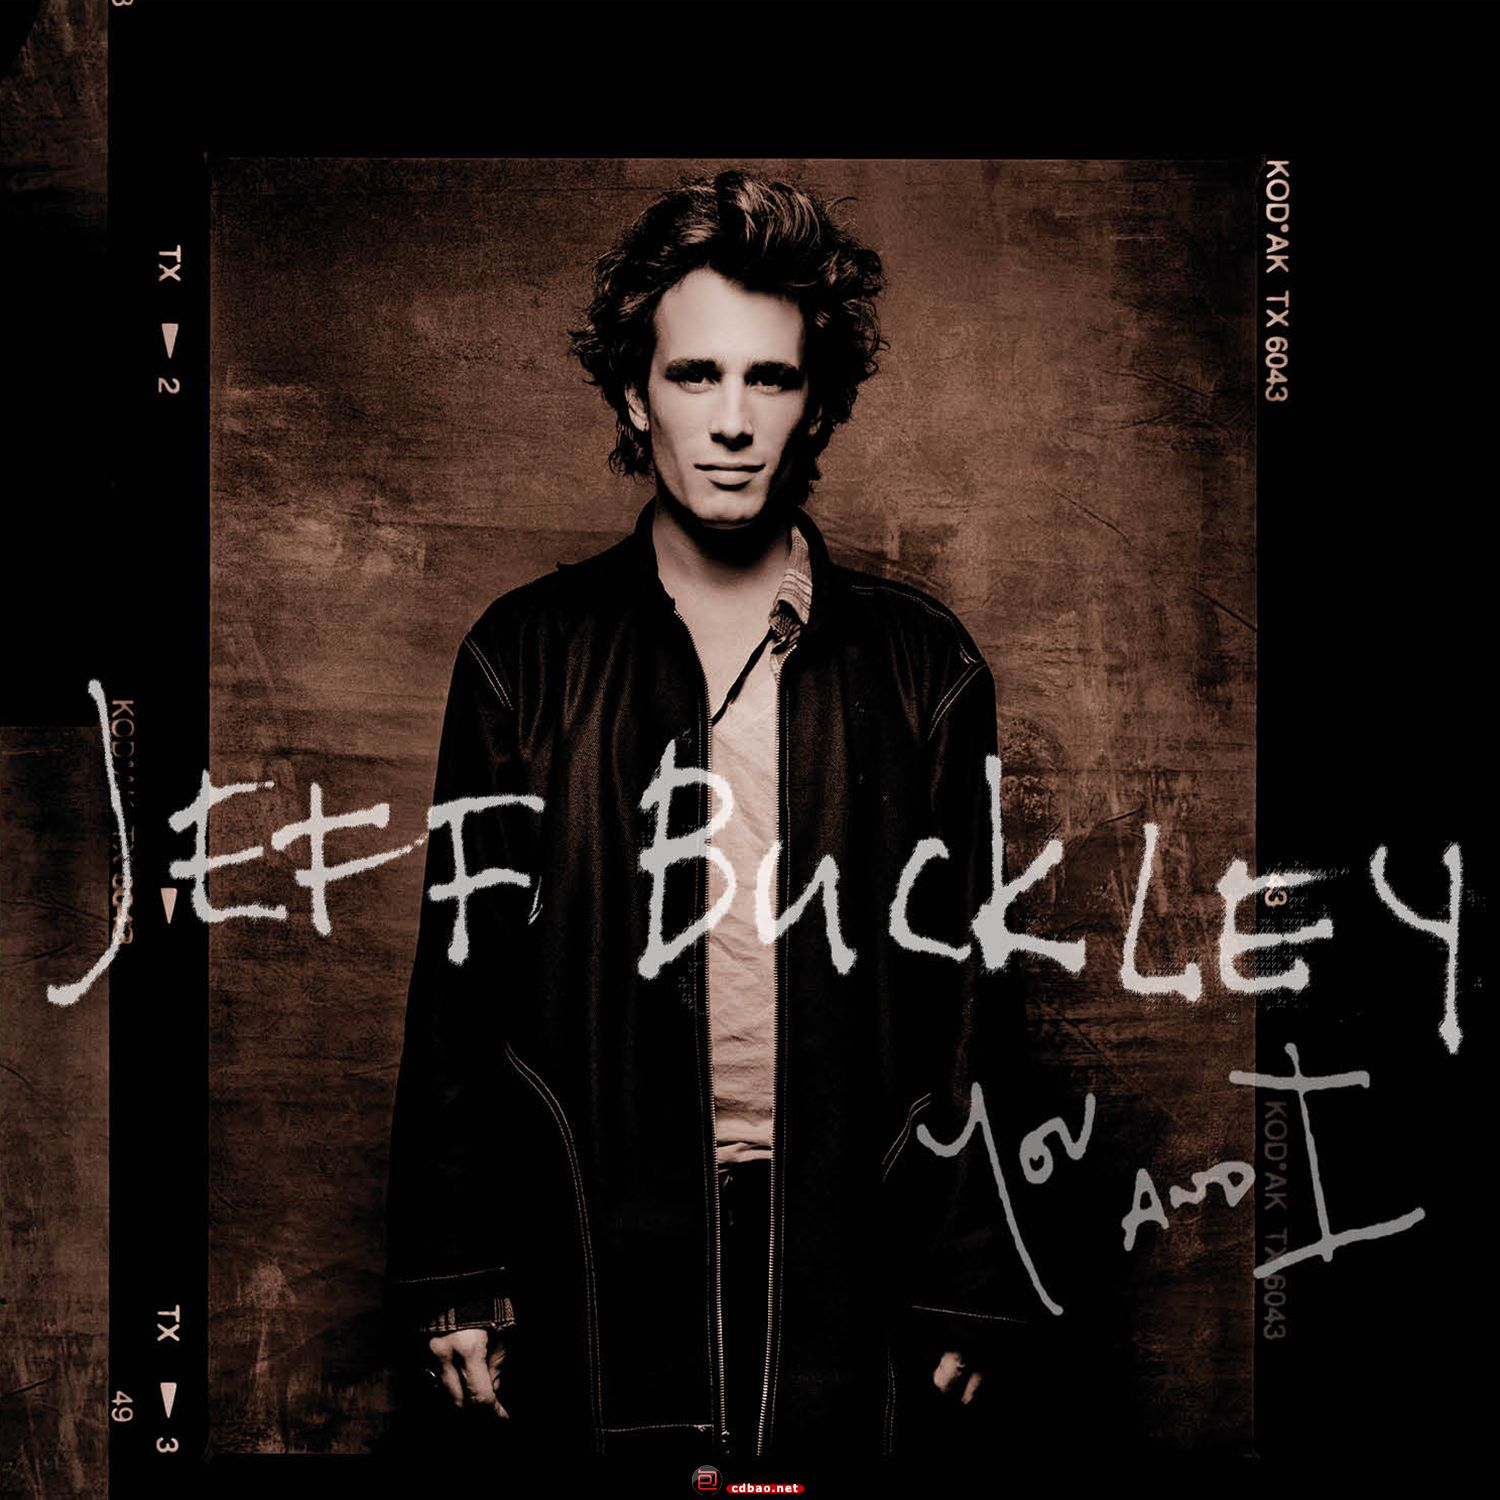 Jeff_Buckley-You_and_I.jpg